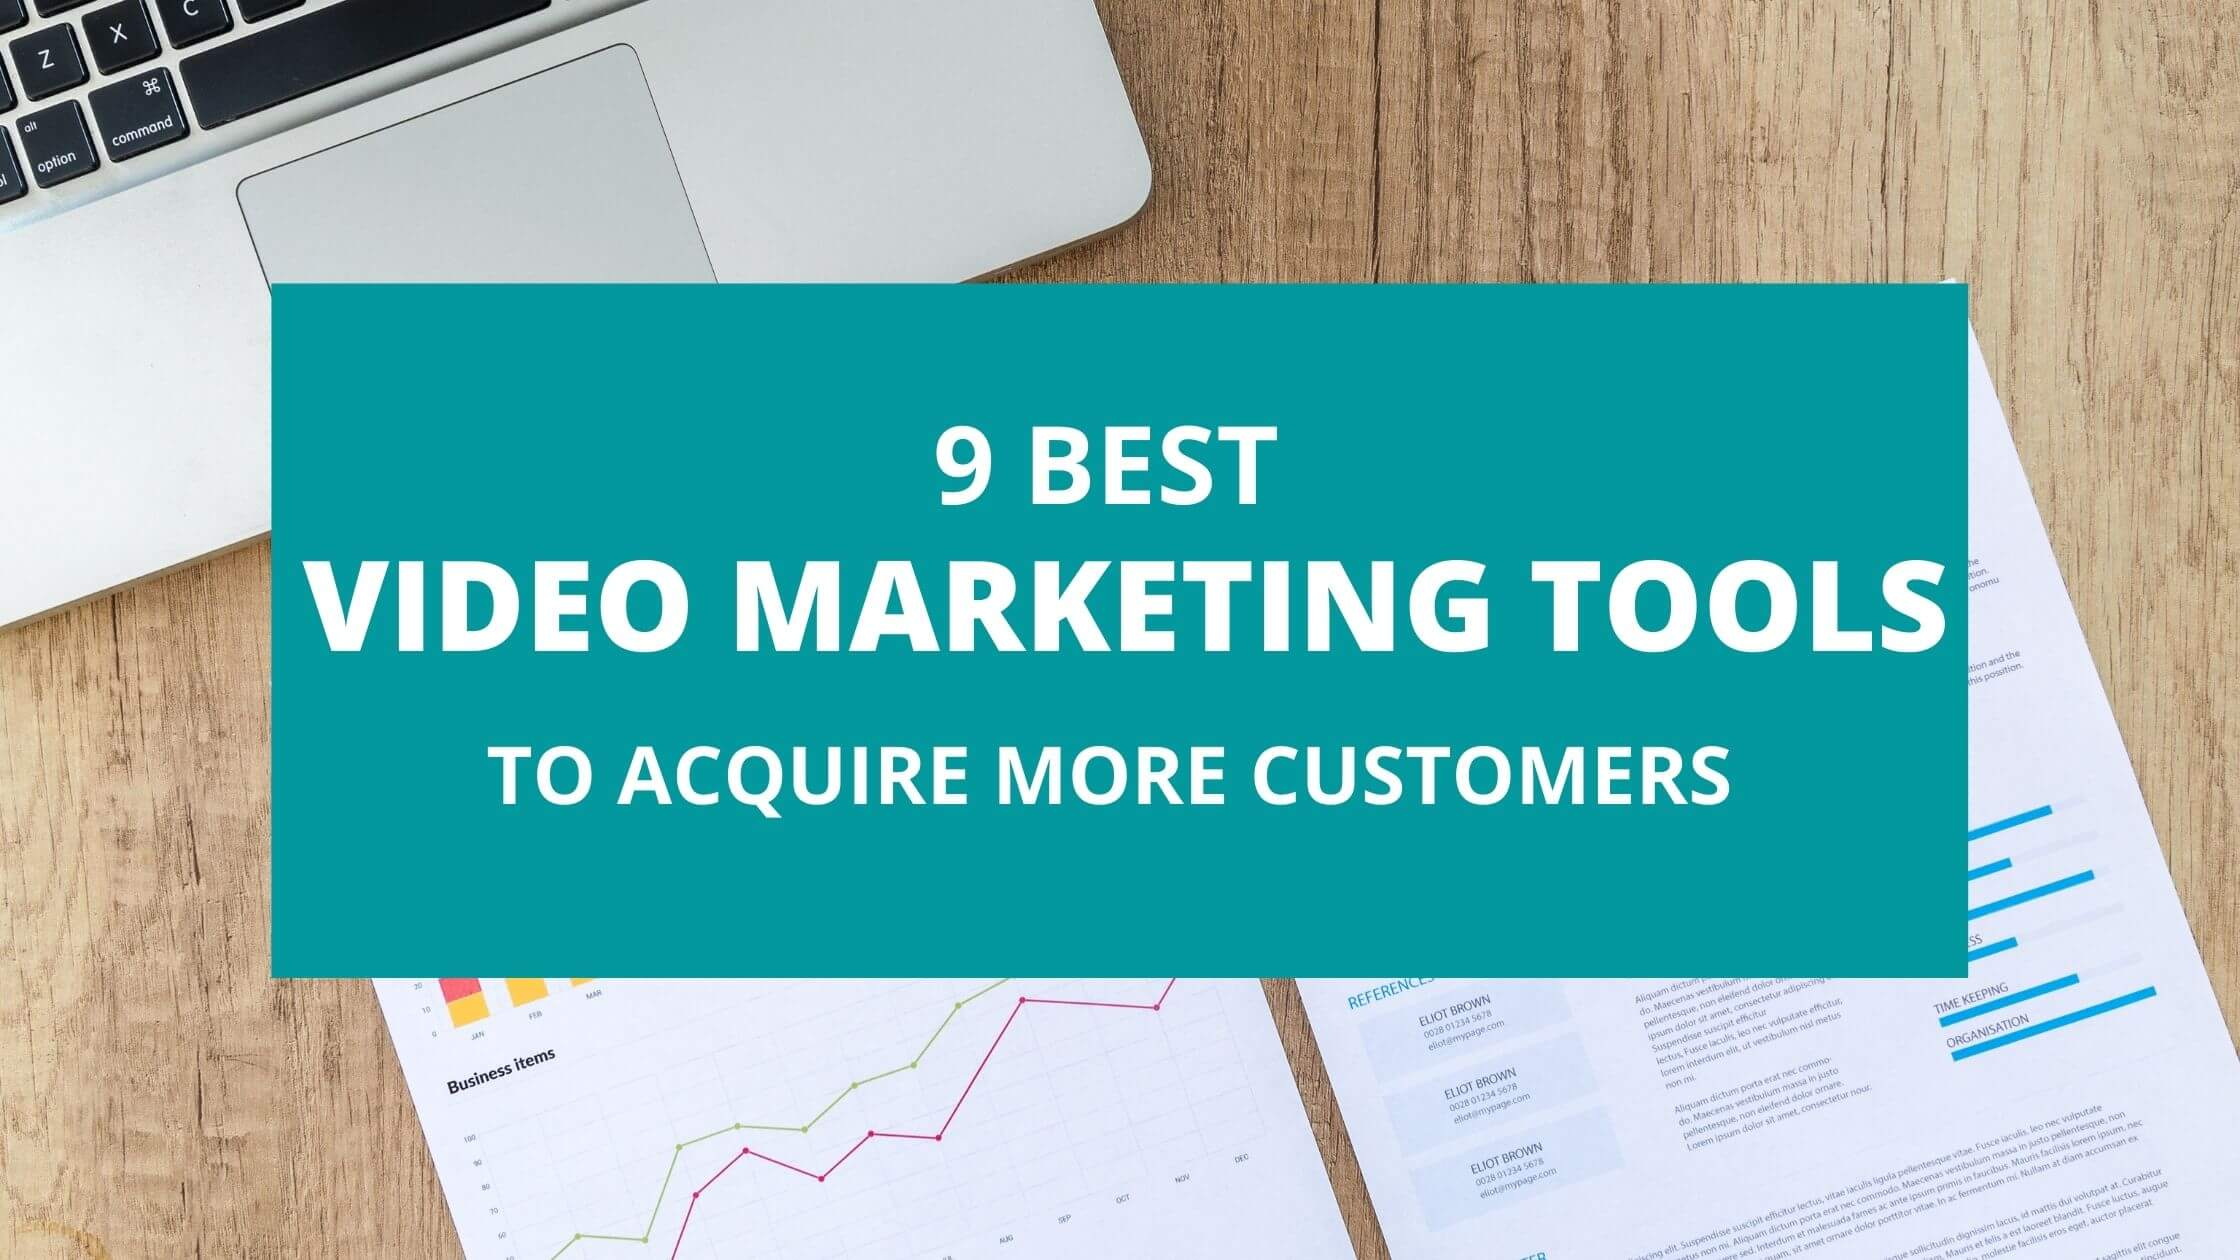 Video marketing tools